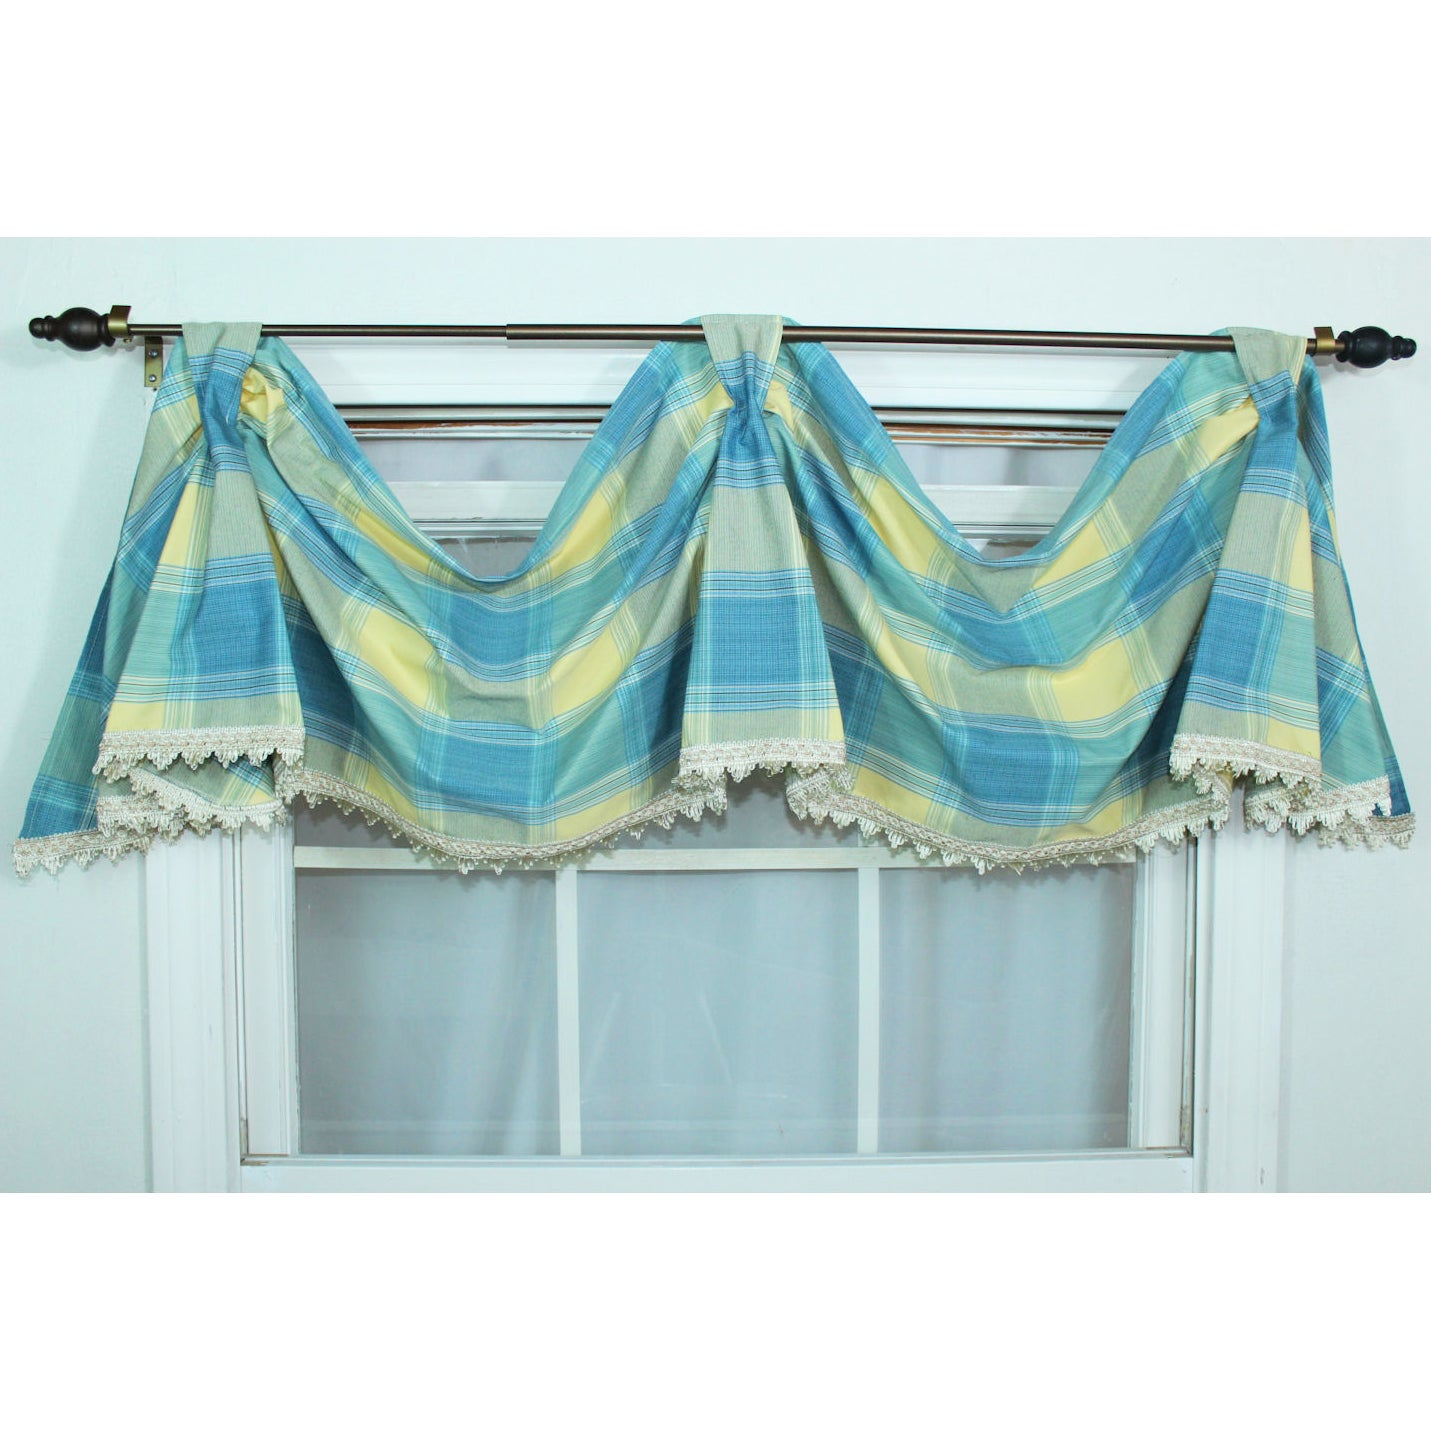 Rlf Home Duncaster Porcelain Celebration Window Valance at Sears.com